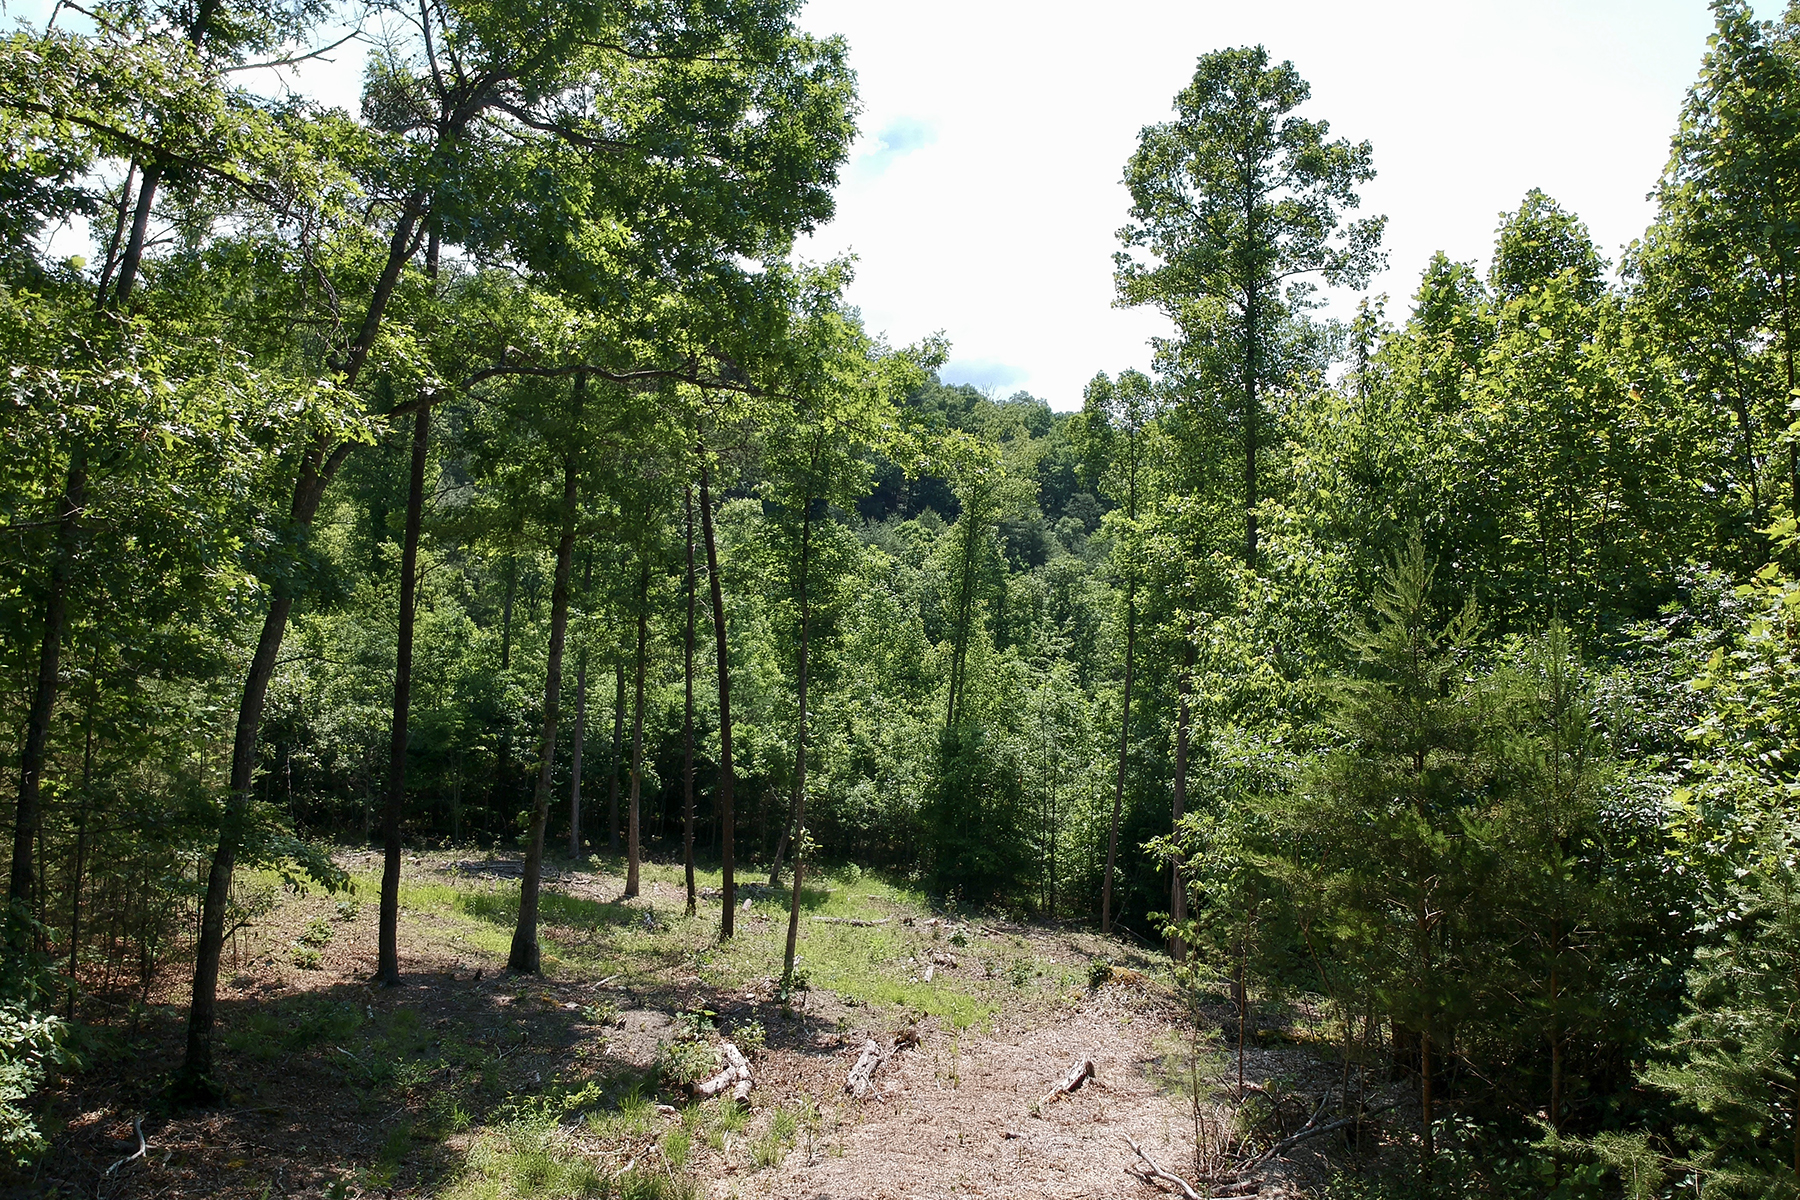 Land for Sale at FRENCH BROAD CROSSING 225 Red Fox Trl , 17 Bluffs, Marshall, North Carolina 28753 United States